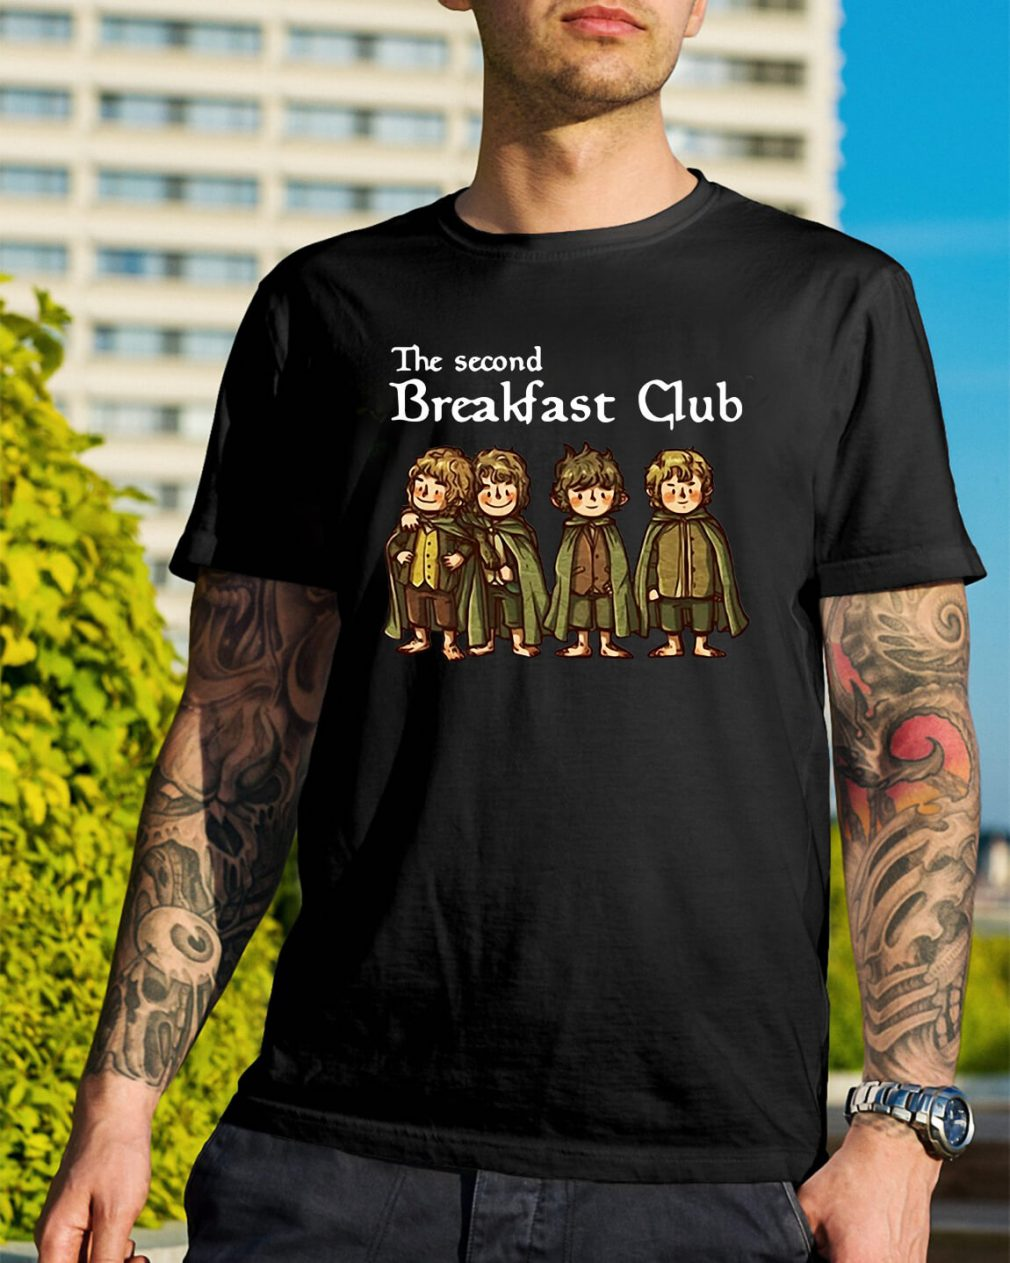 The second Breakfast Club shirt